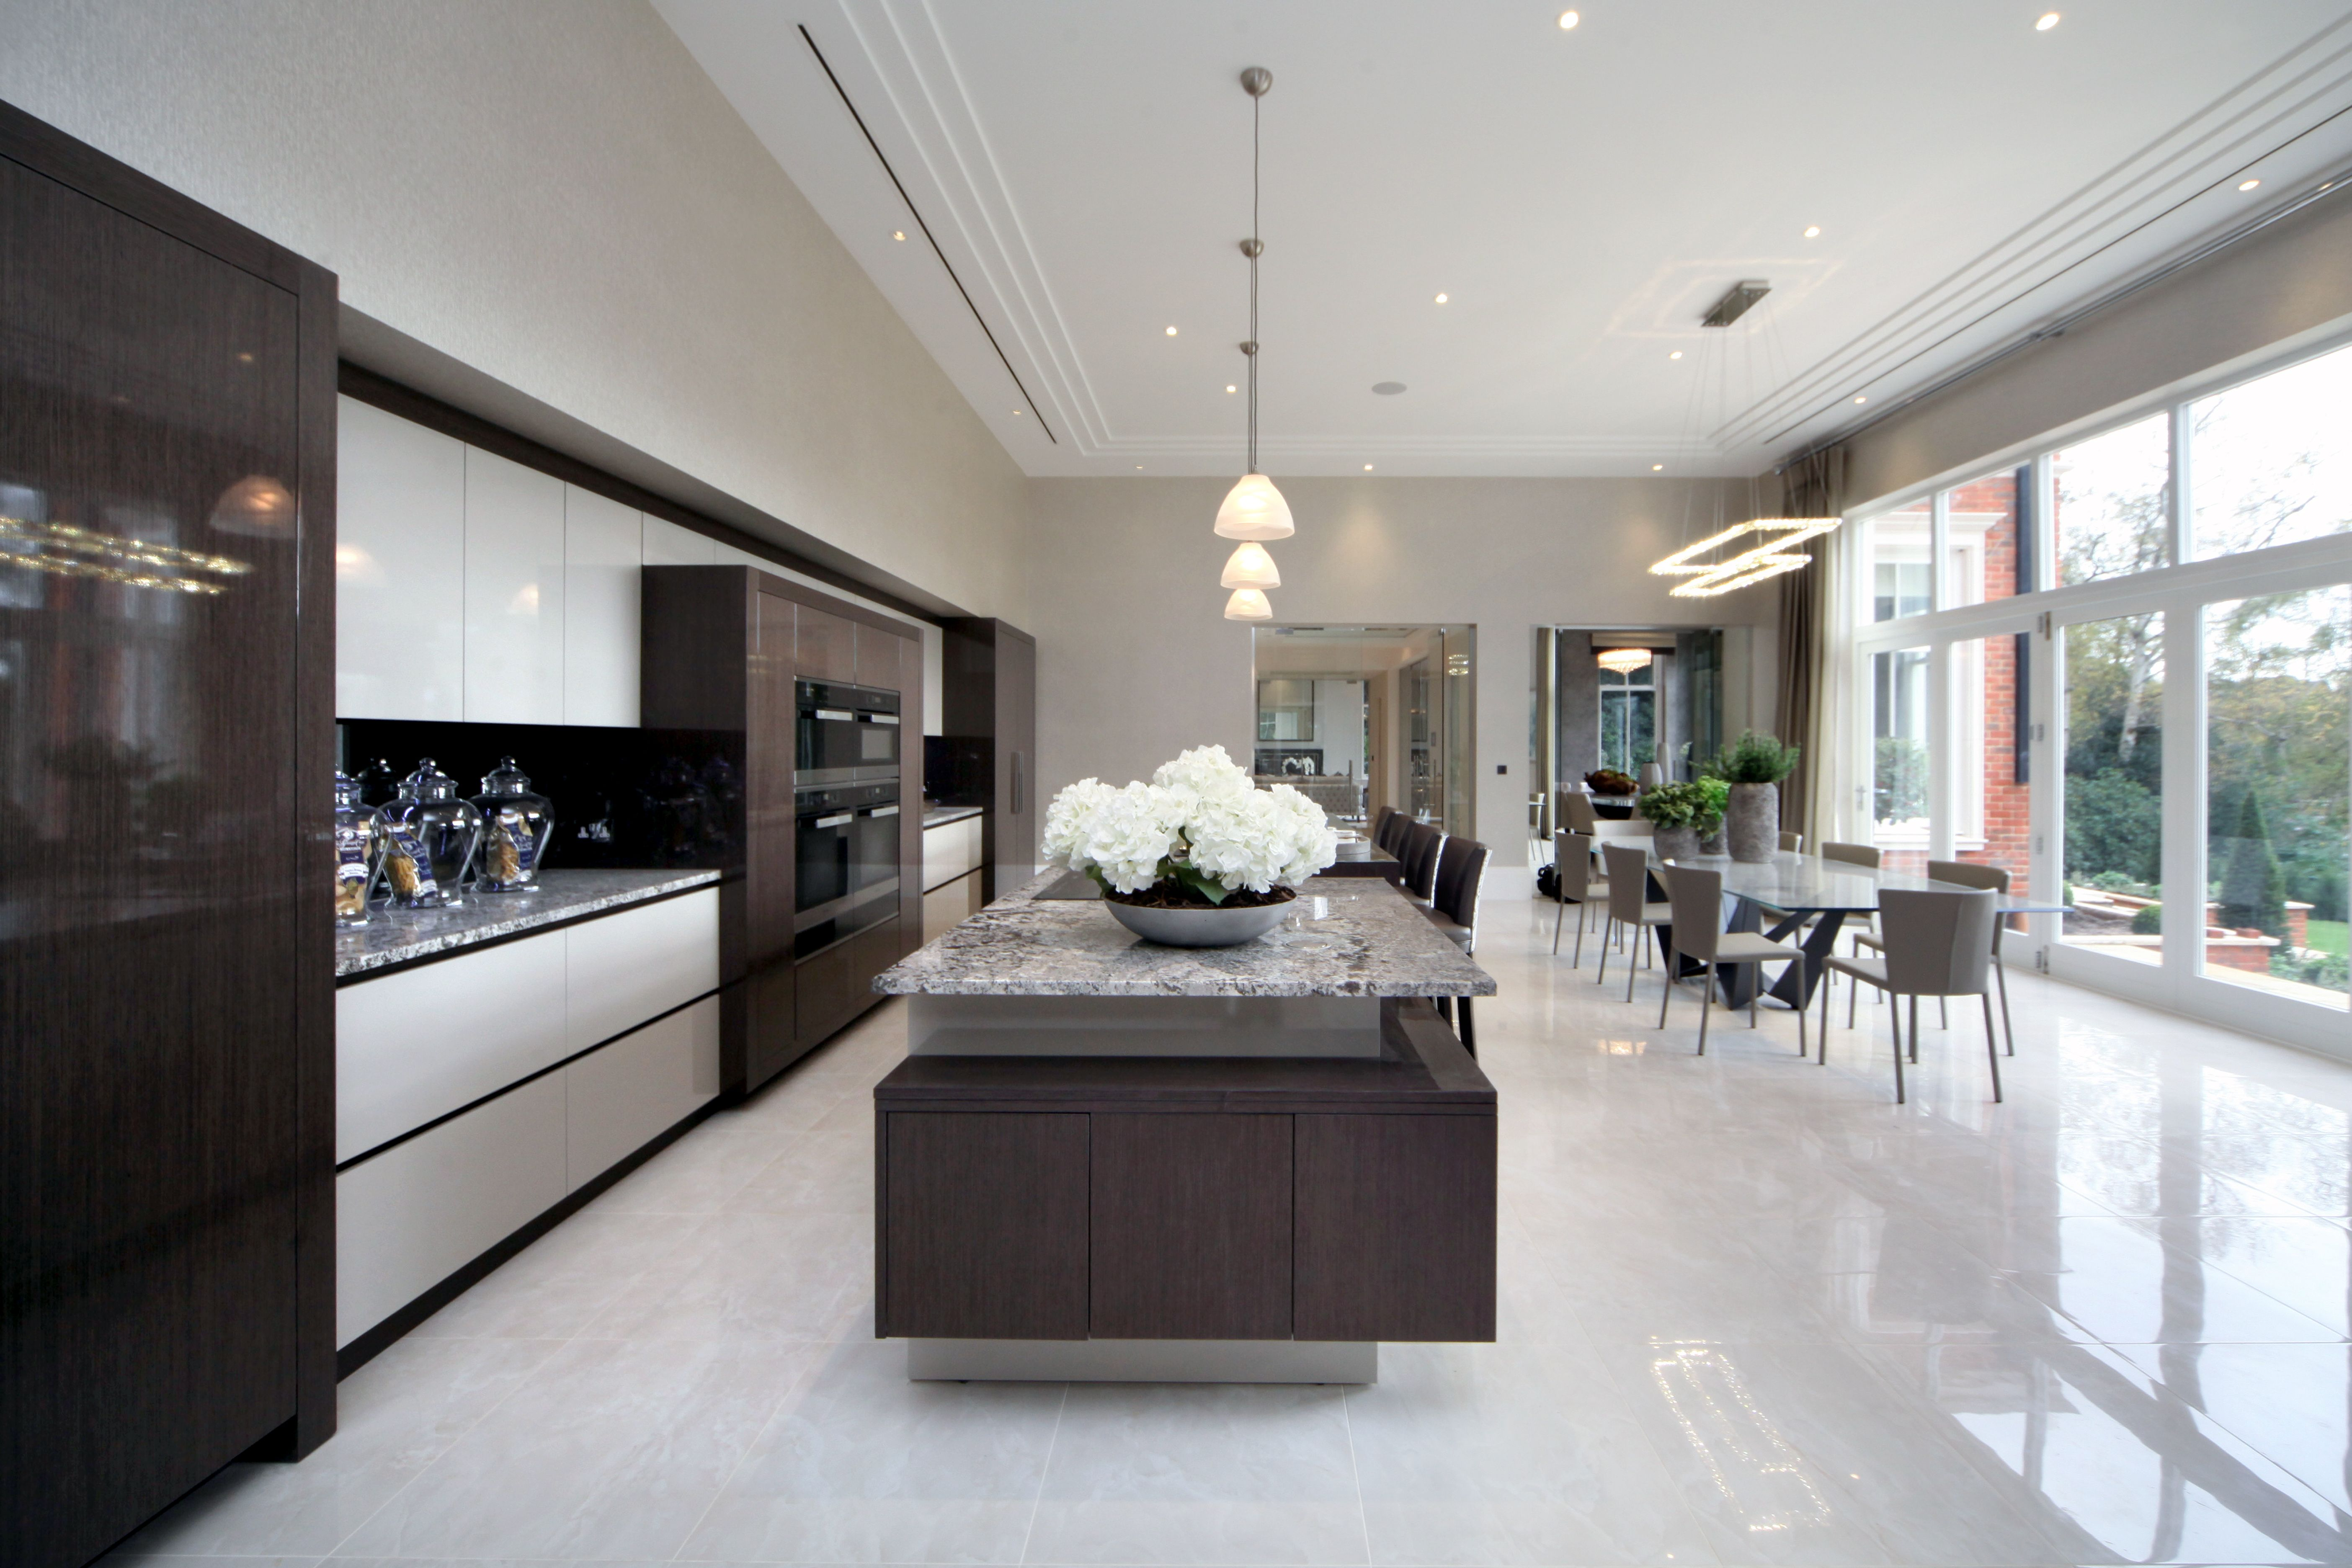 EXTREME Linear high gloss kitchen design in private